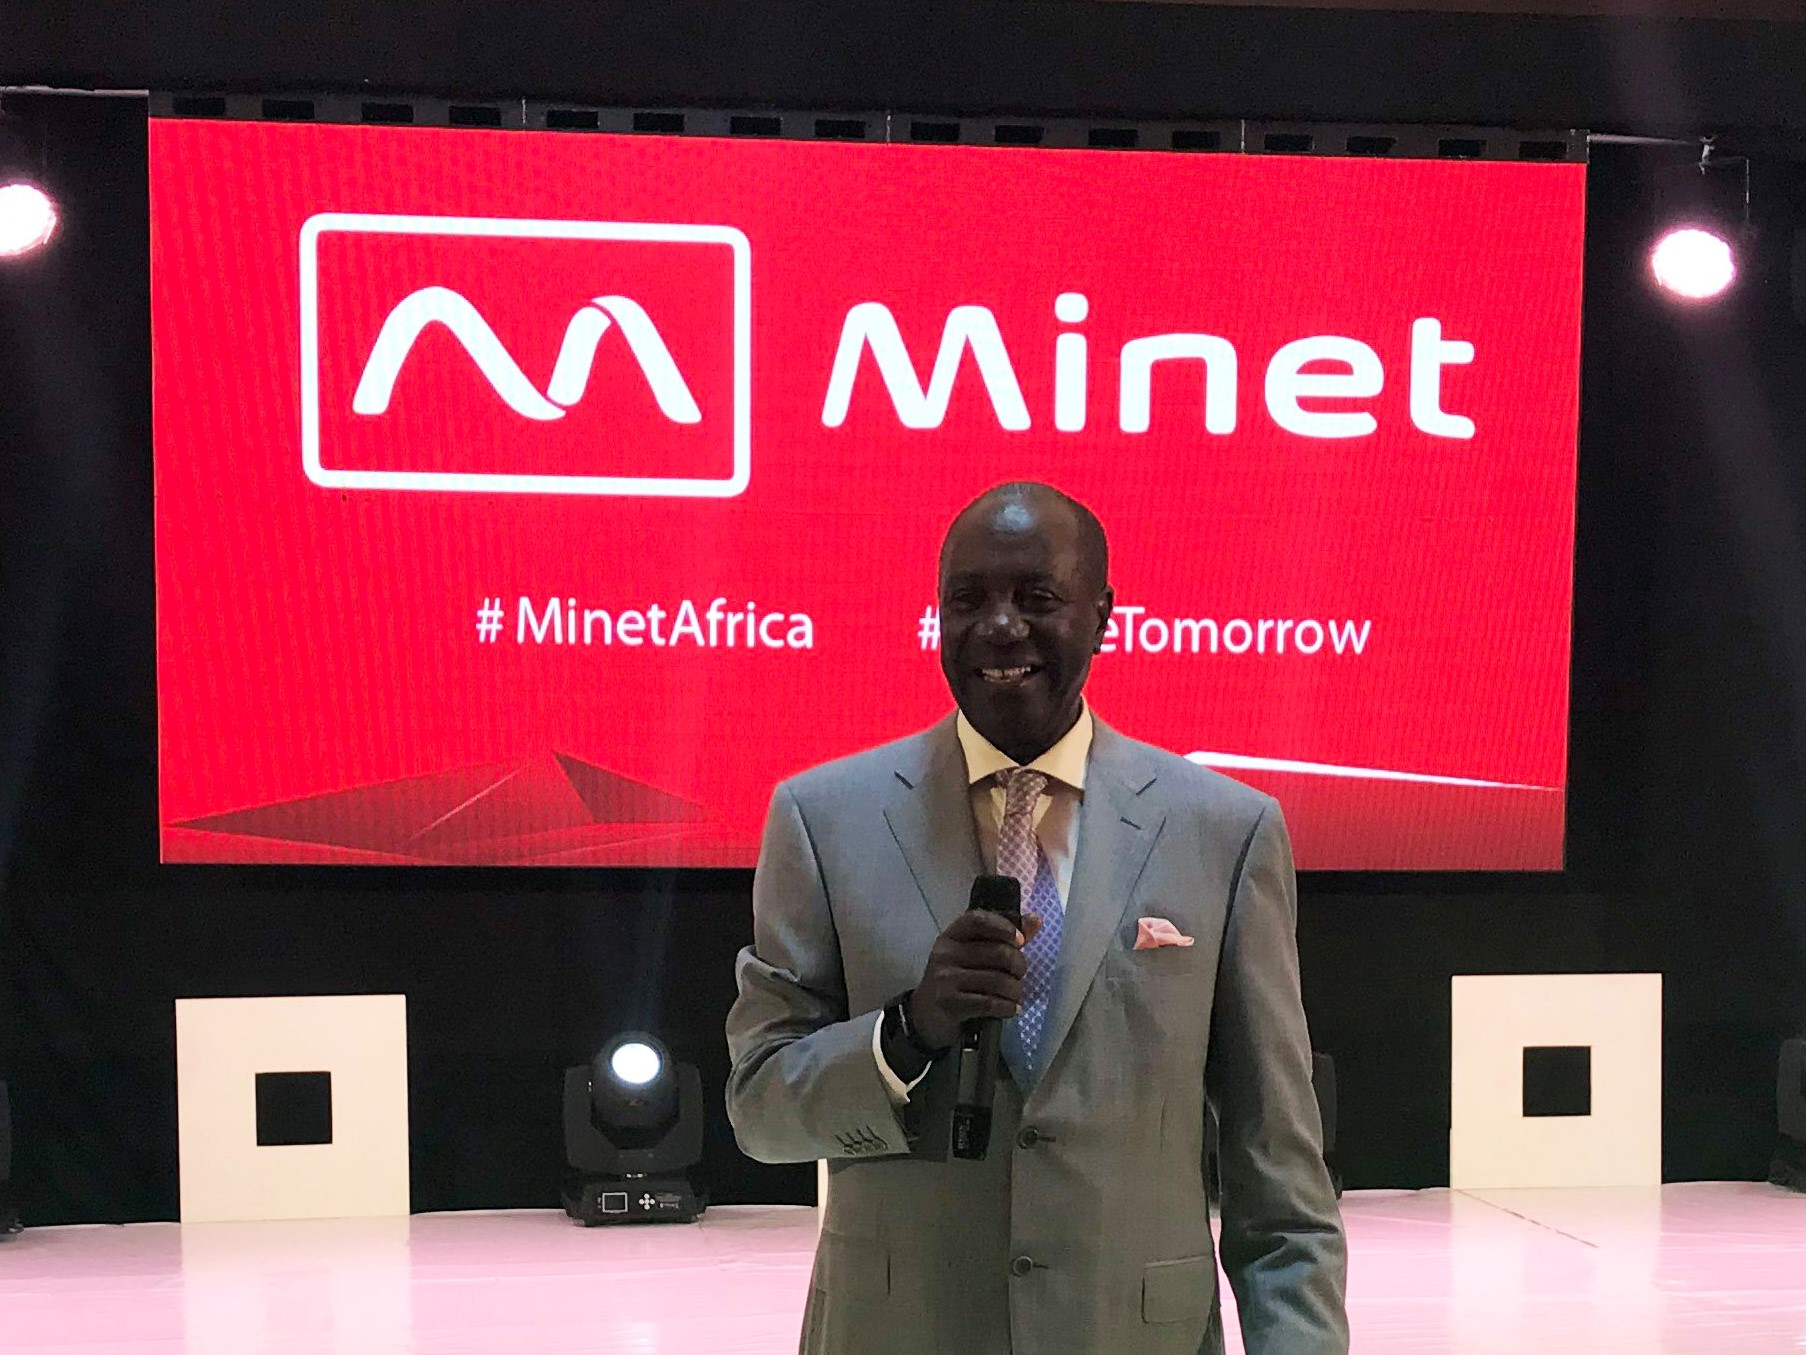 Teachers insurance provider AON Minet Gives Teachers up to 10th April to upload dependants documents